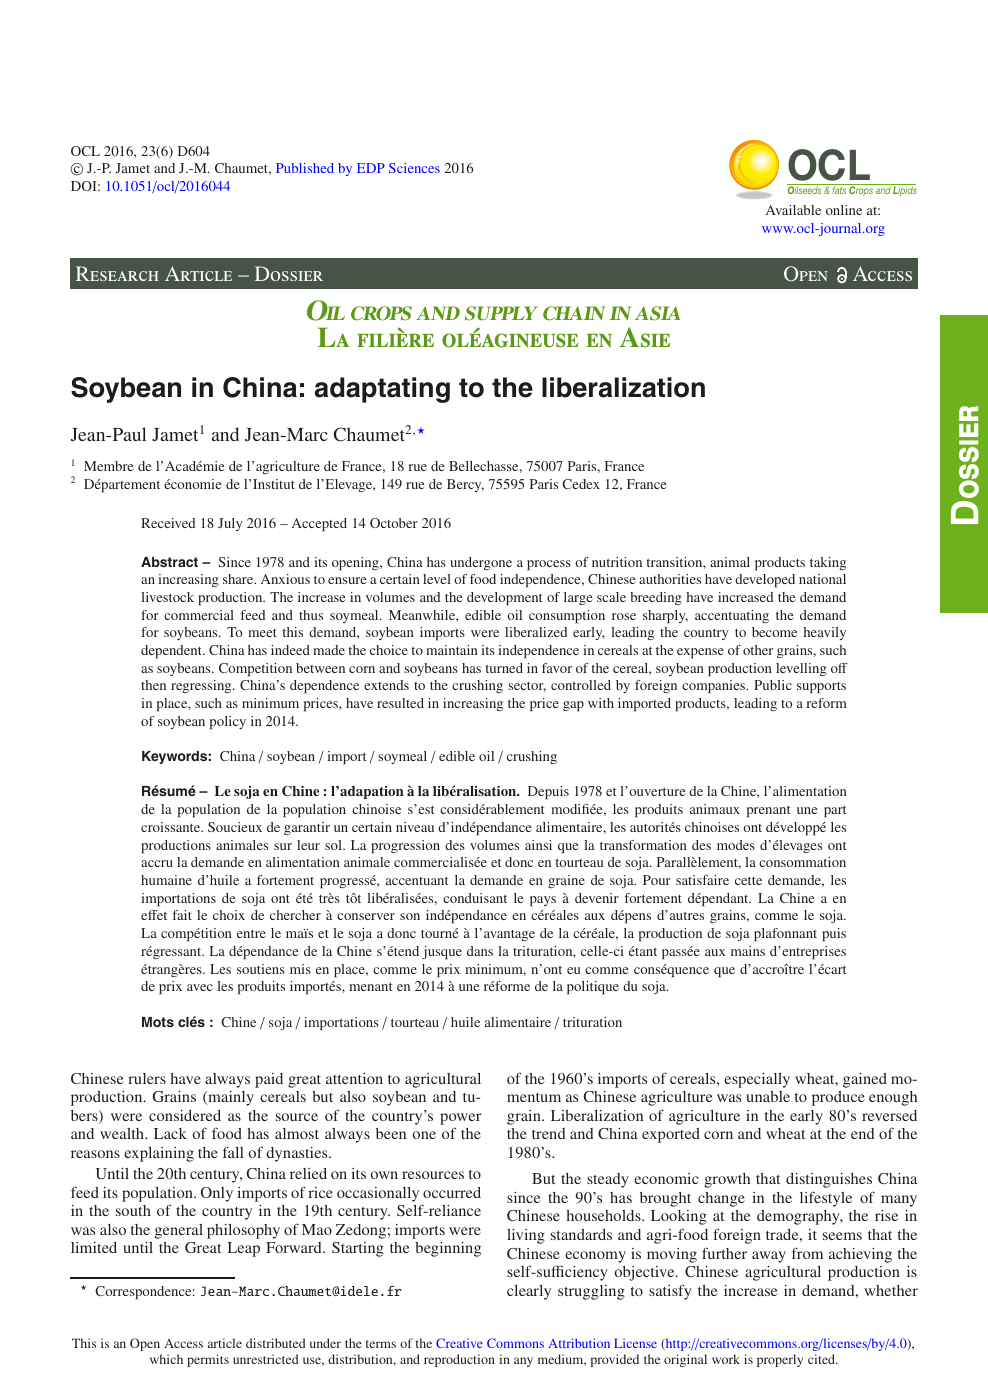 Difference Niveau Entre 2 Pieces soybean in china: adaptating to the liberalization – topic